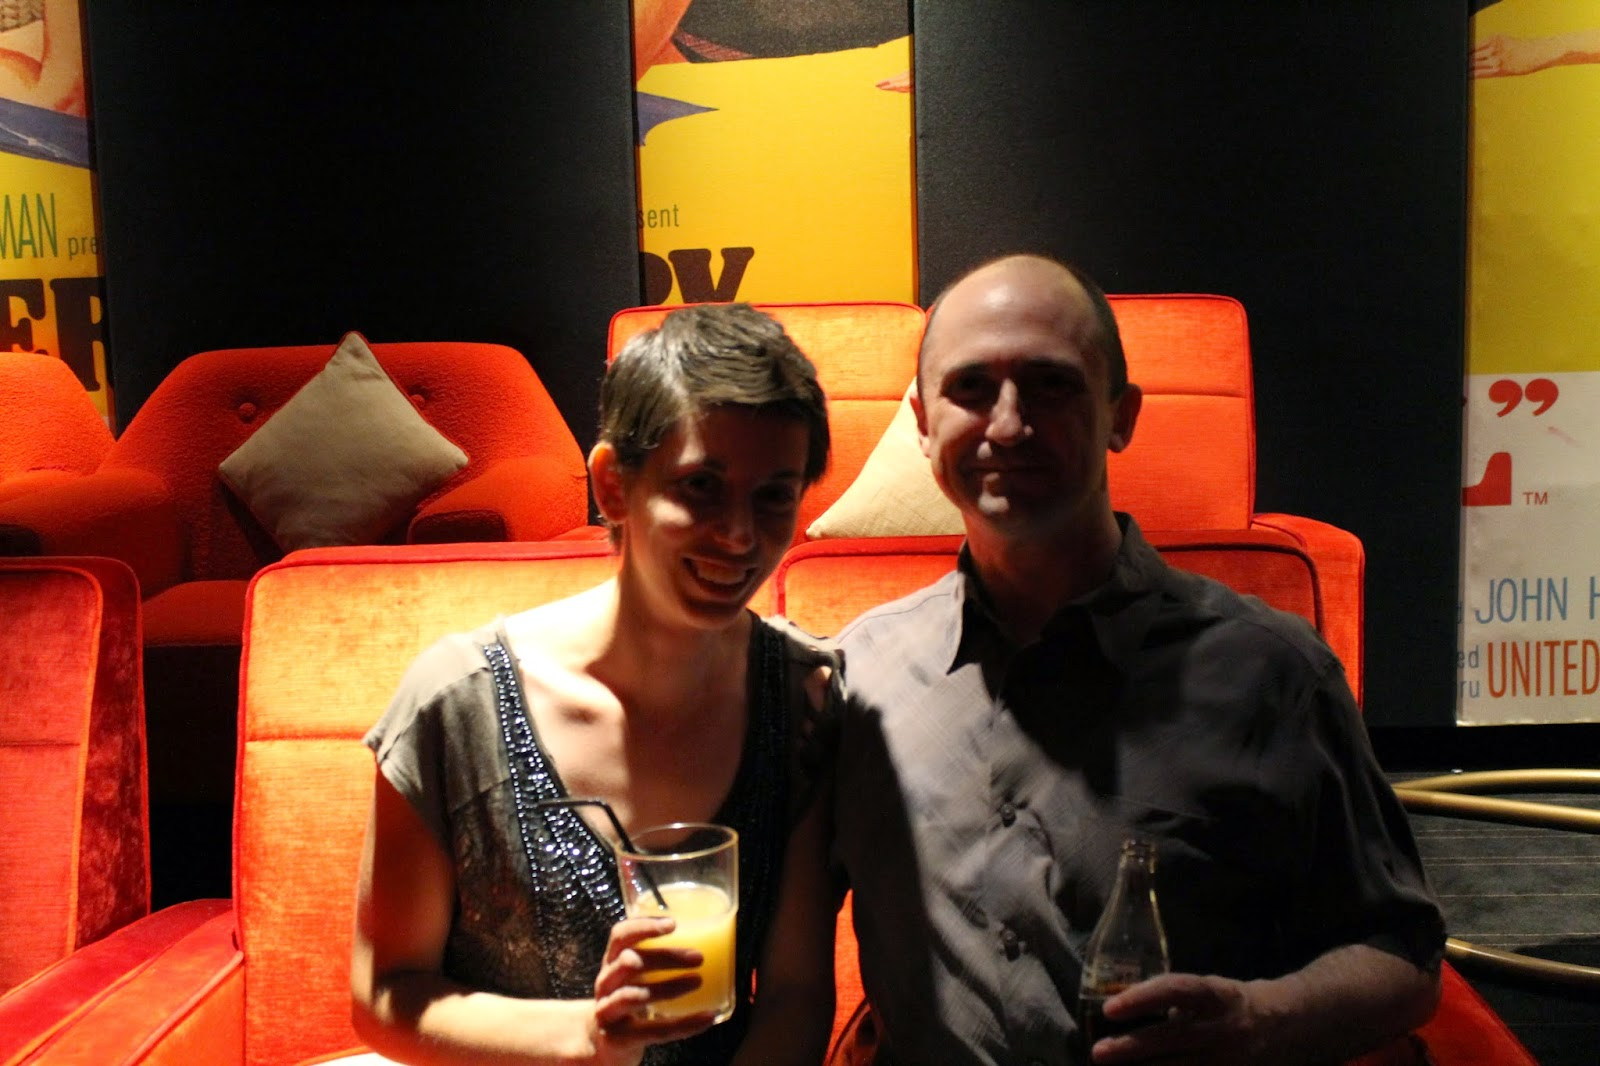 Husband and myself at Everyman cinema